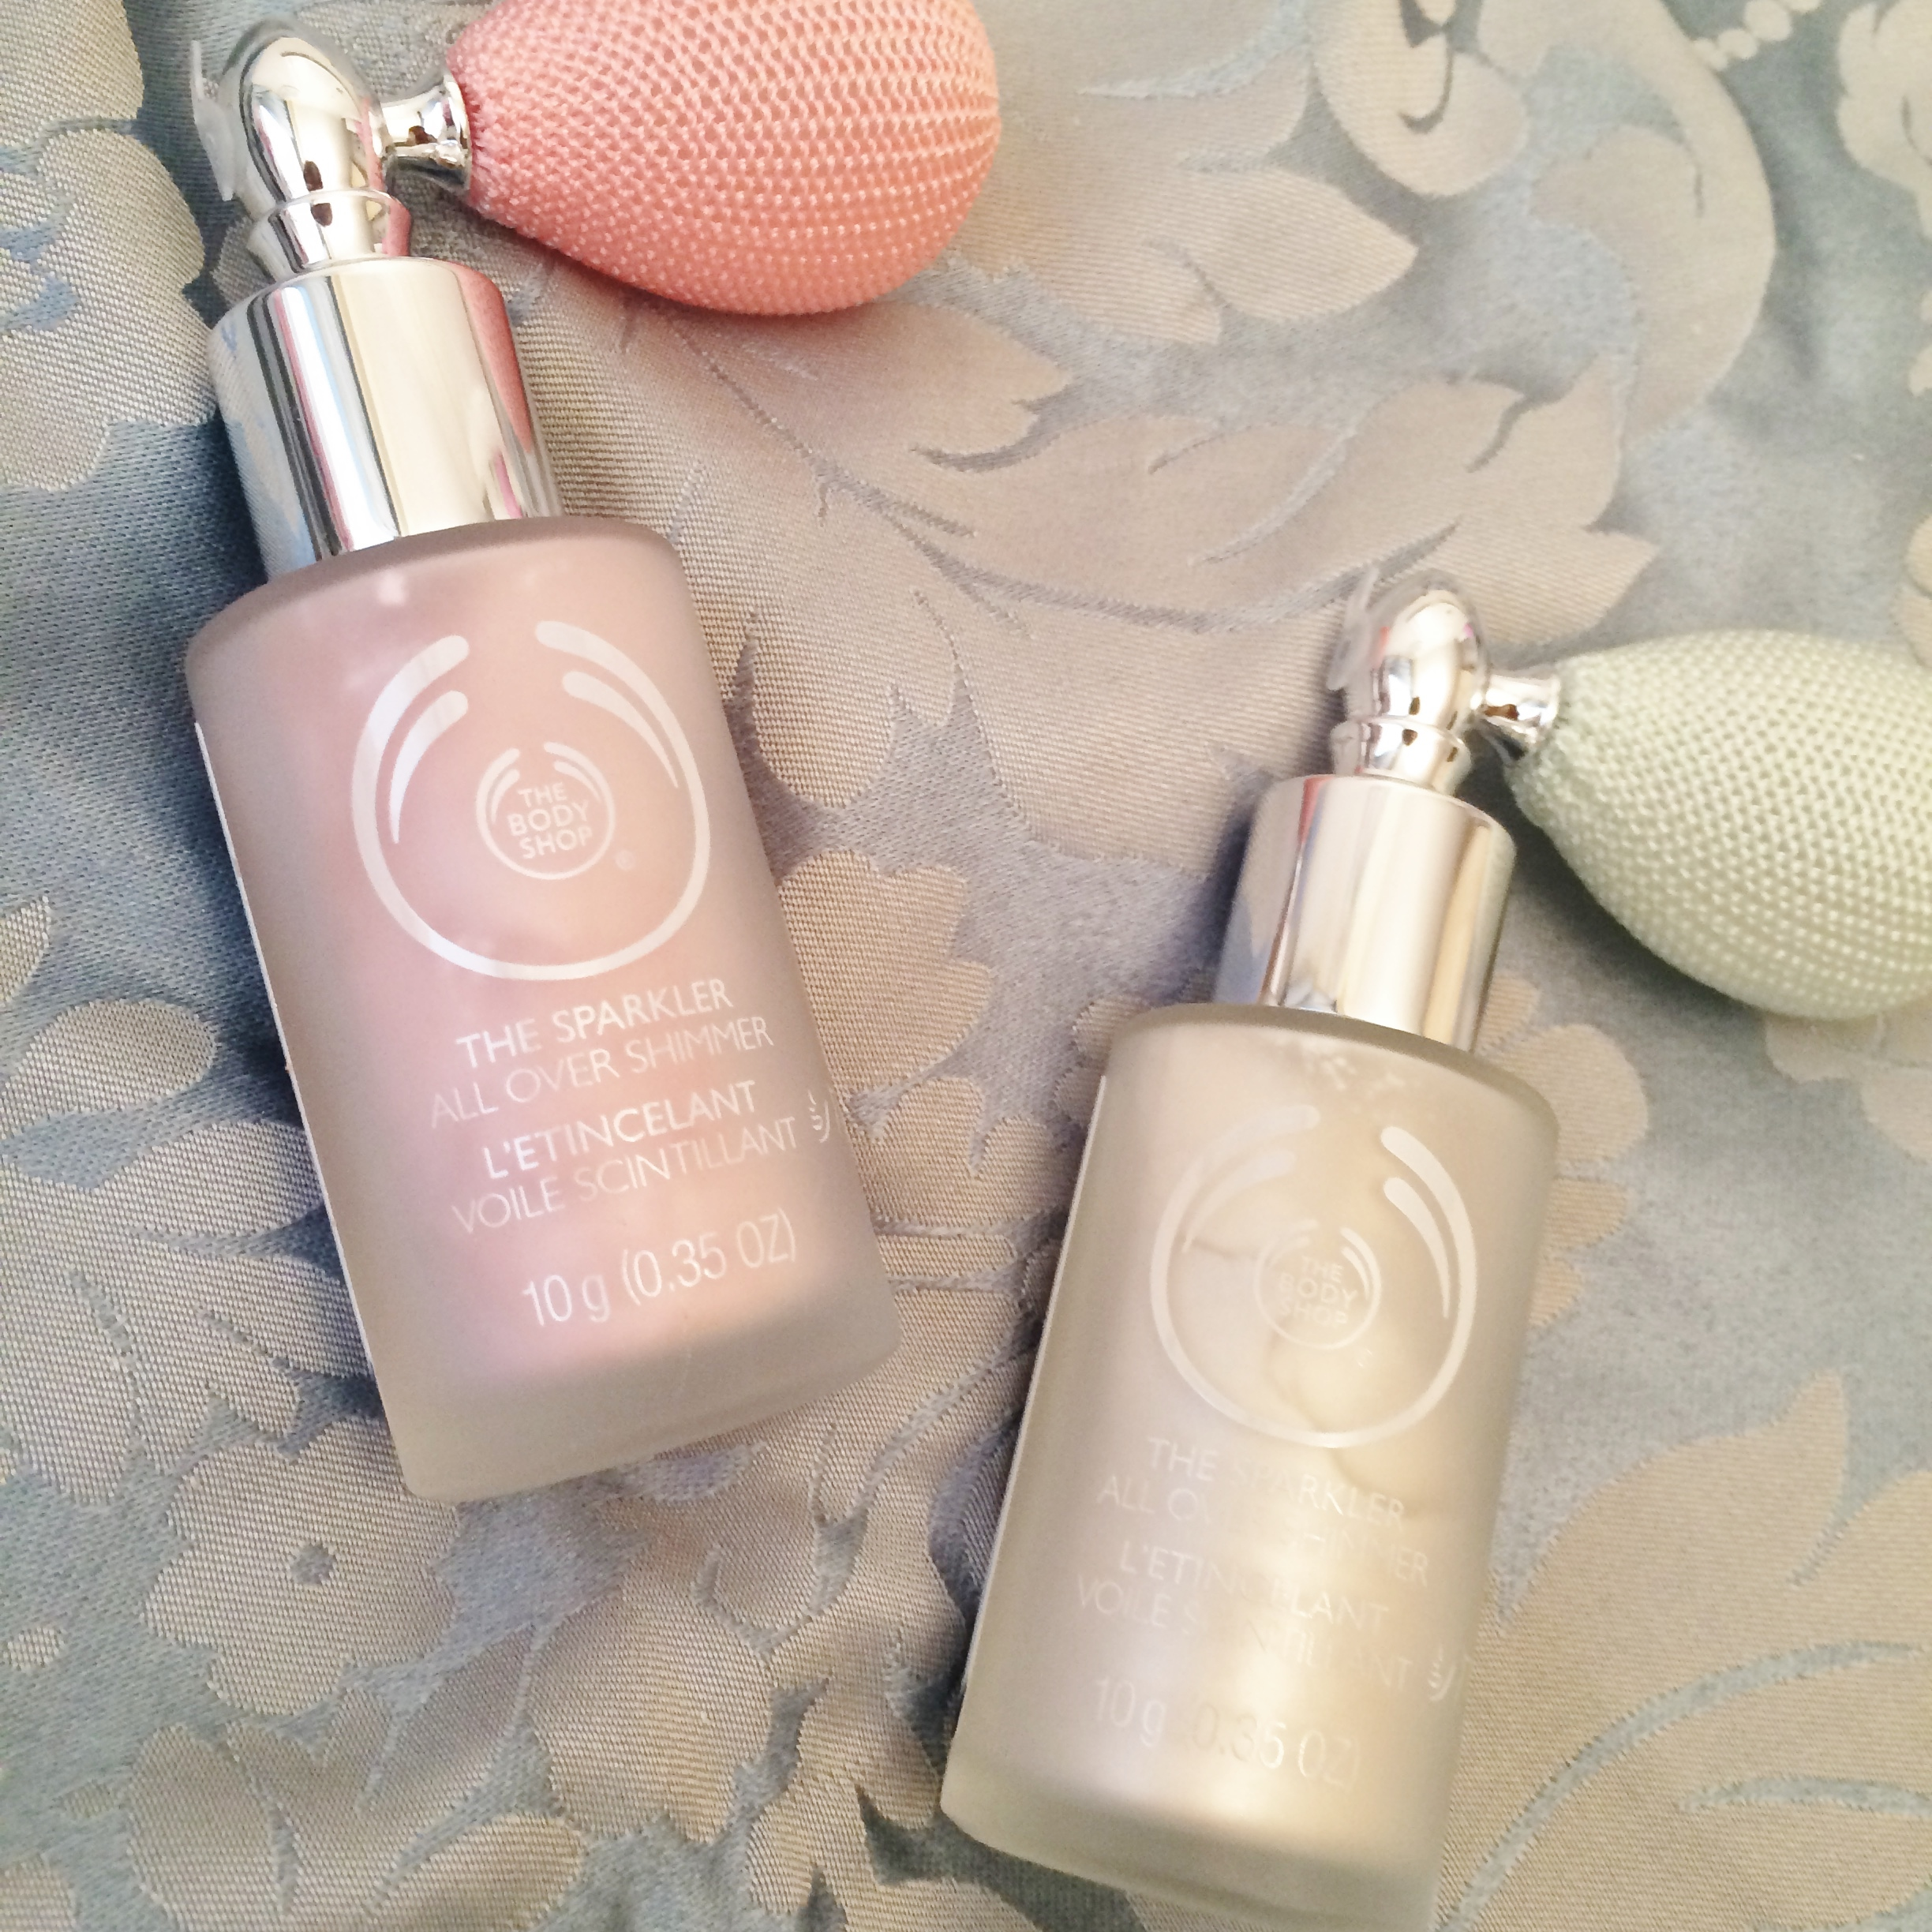 The Sparkler – Body Shop